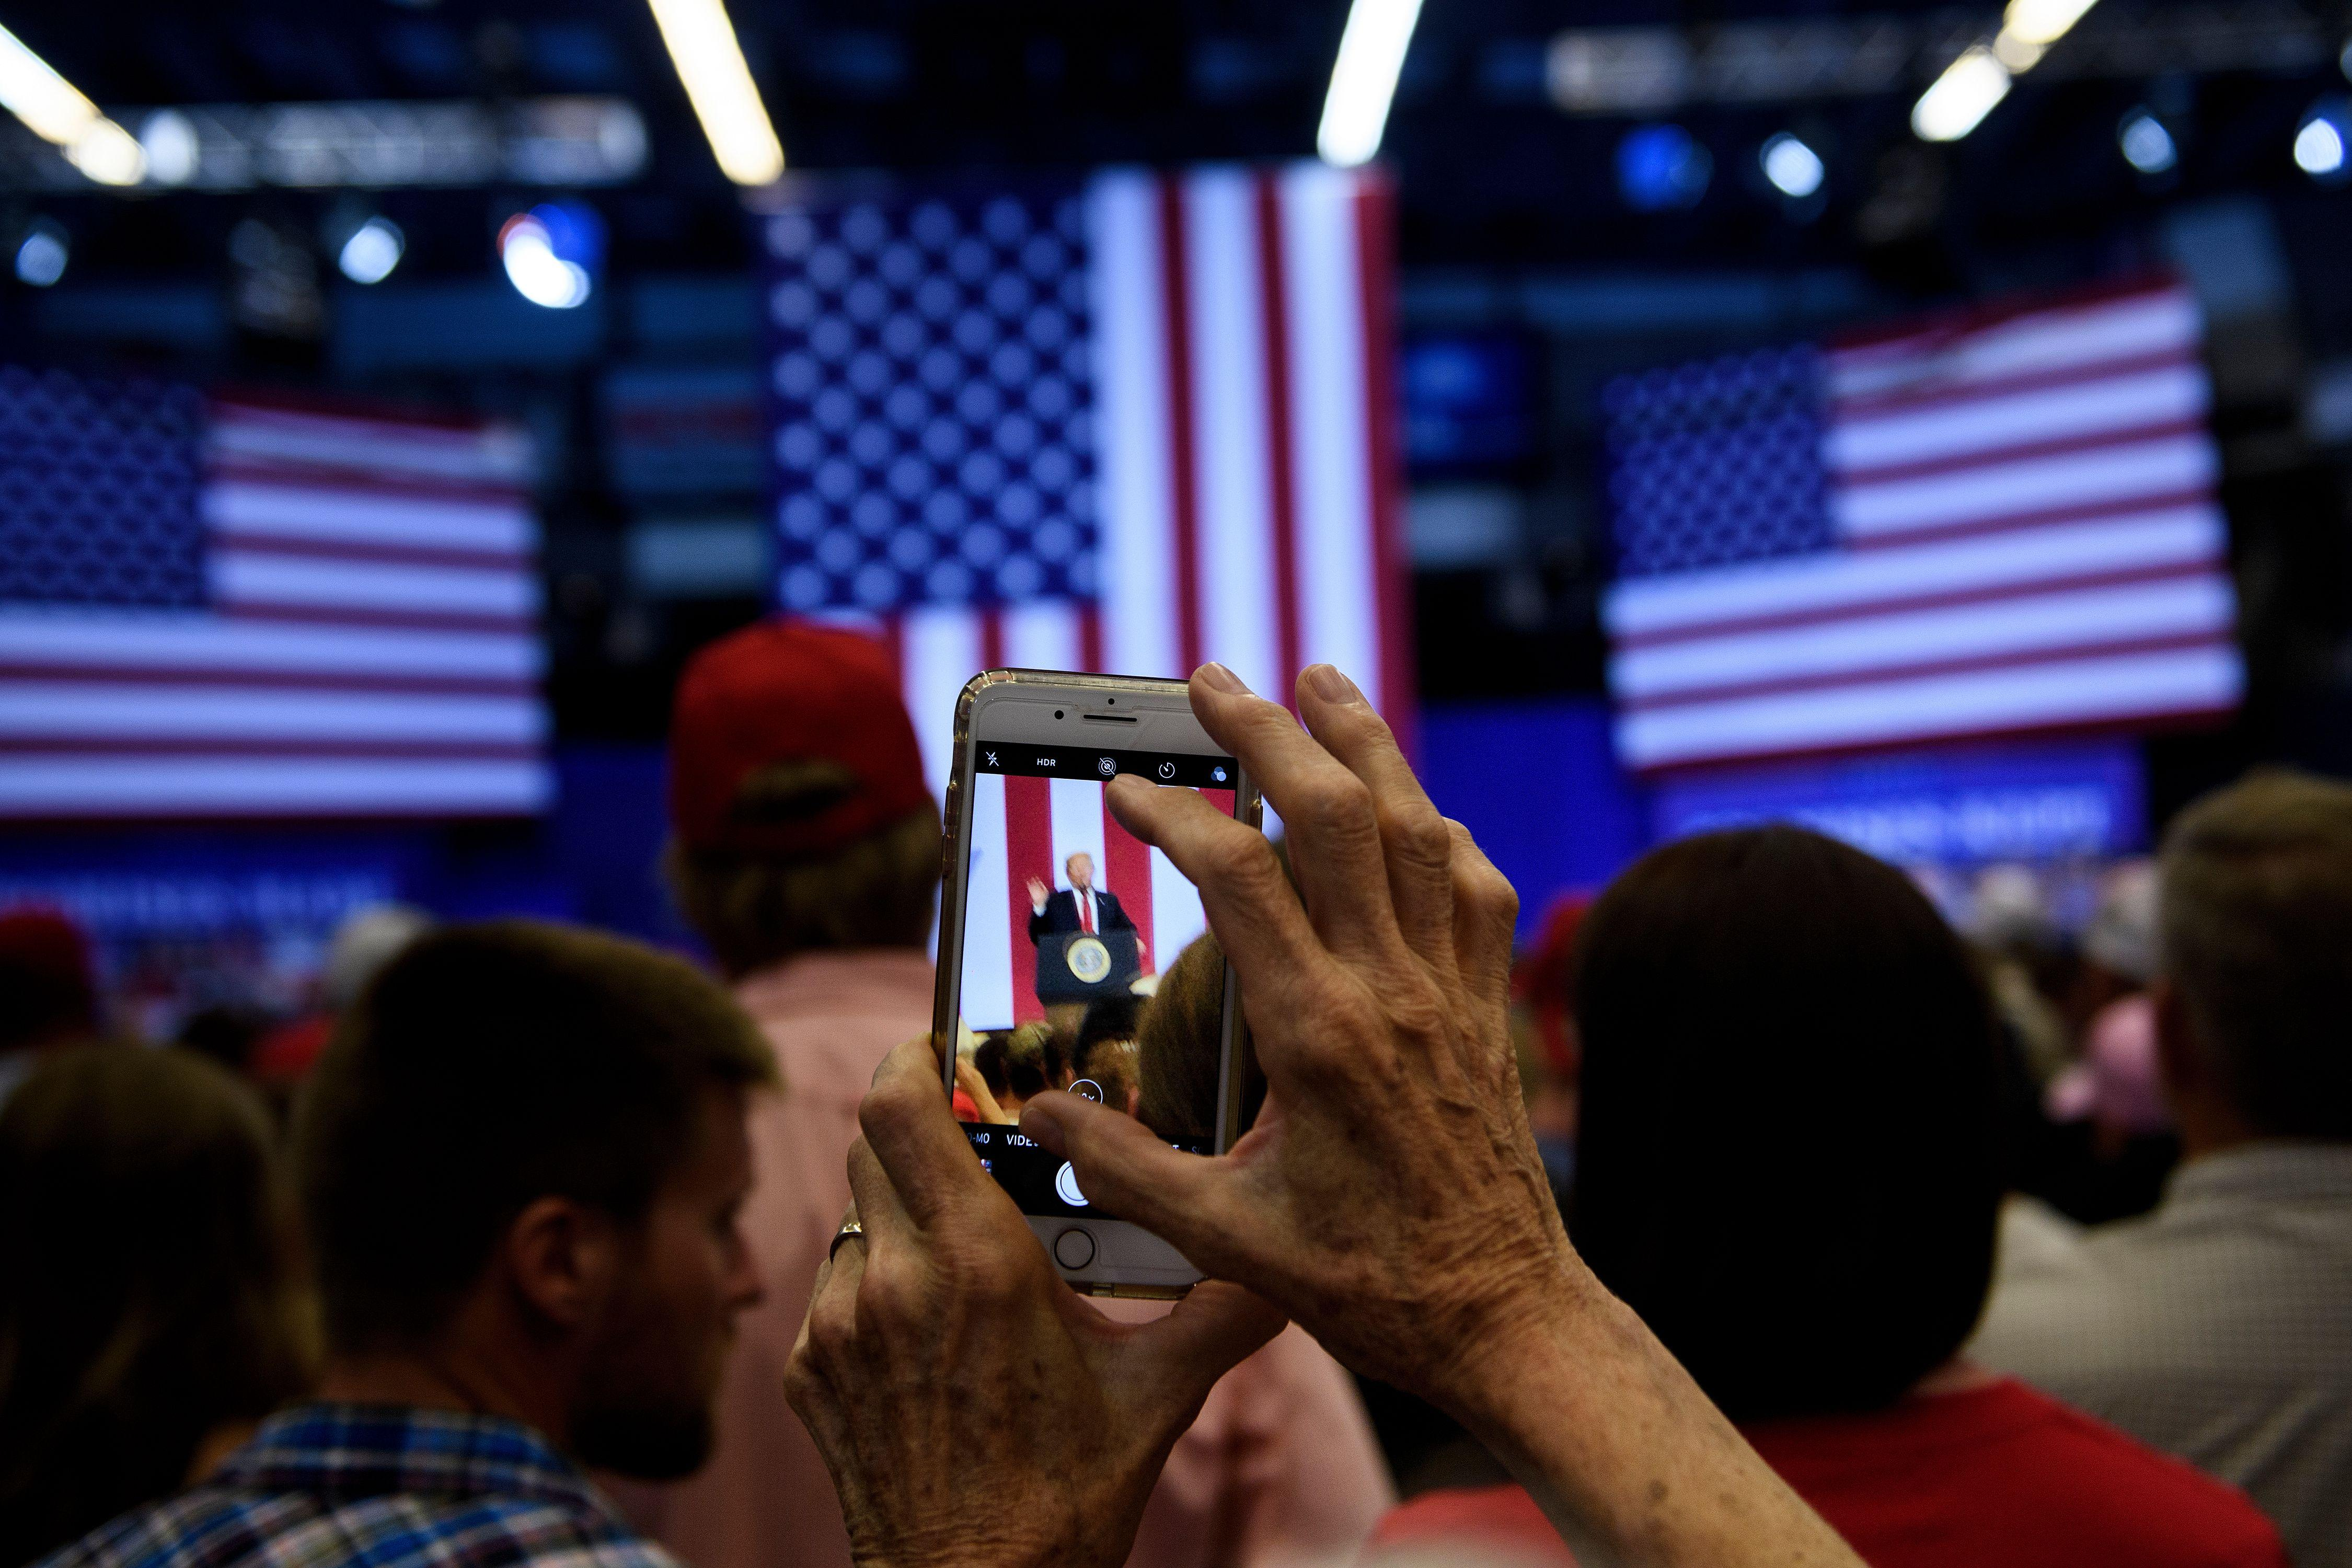 A woman takes a photo as US President Donald Trump speaks during a rally for Rep. Kevin Cramer (R-ND) on June 27, 2018 in Fargo, North Dakota.